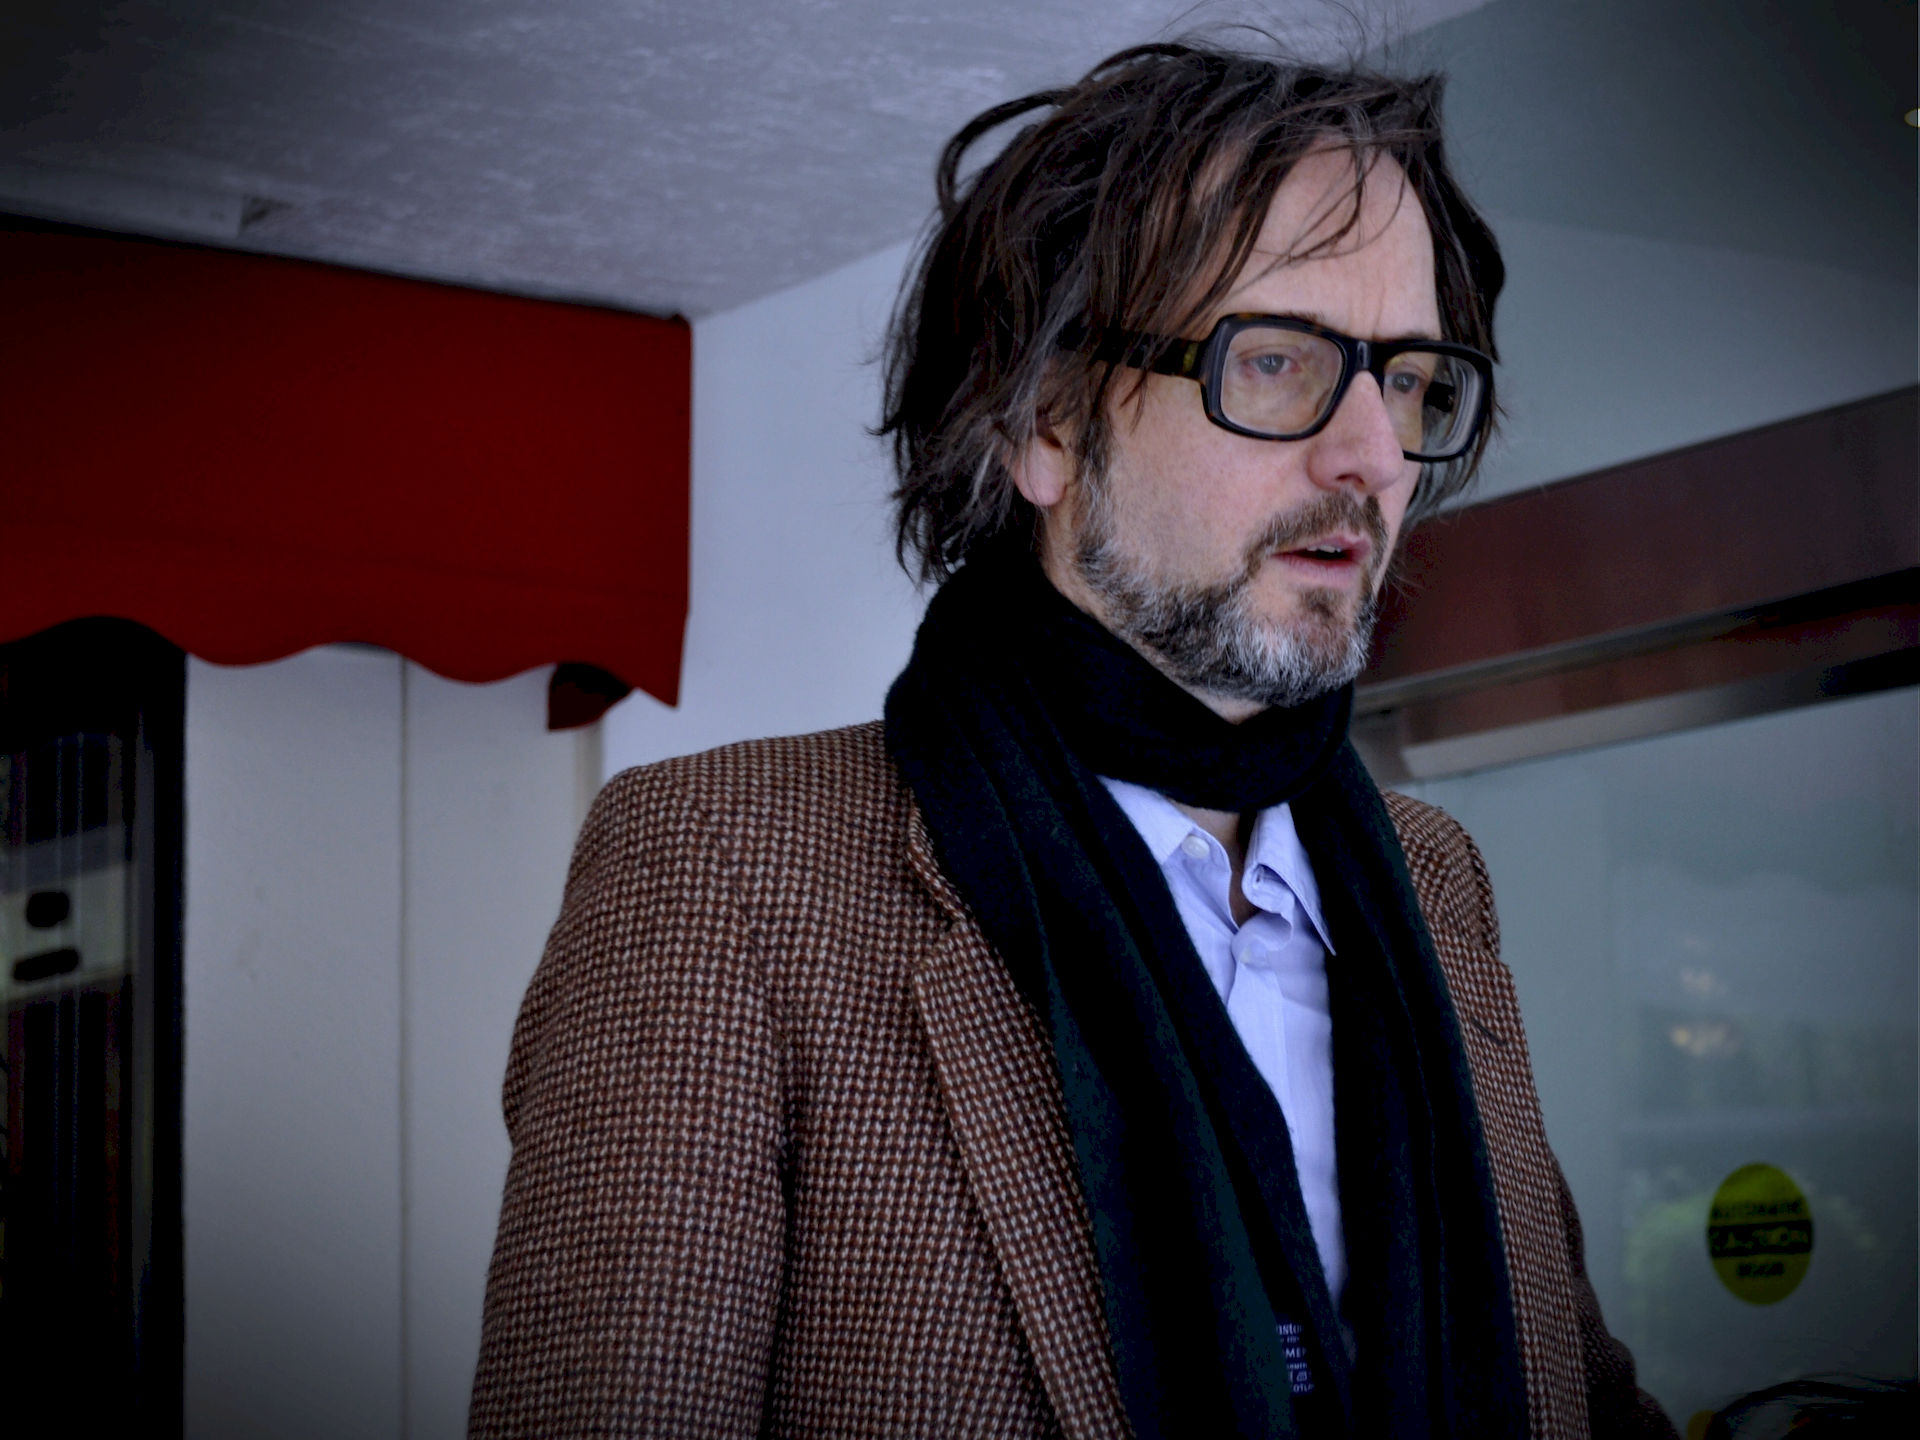 Photo of Jarvis Cocker: English musician, singer-songwriter, radio presenter and editor